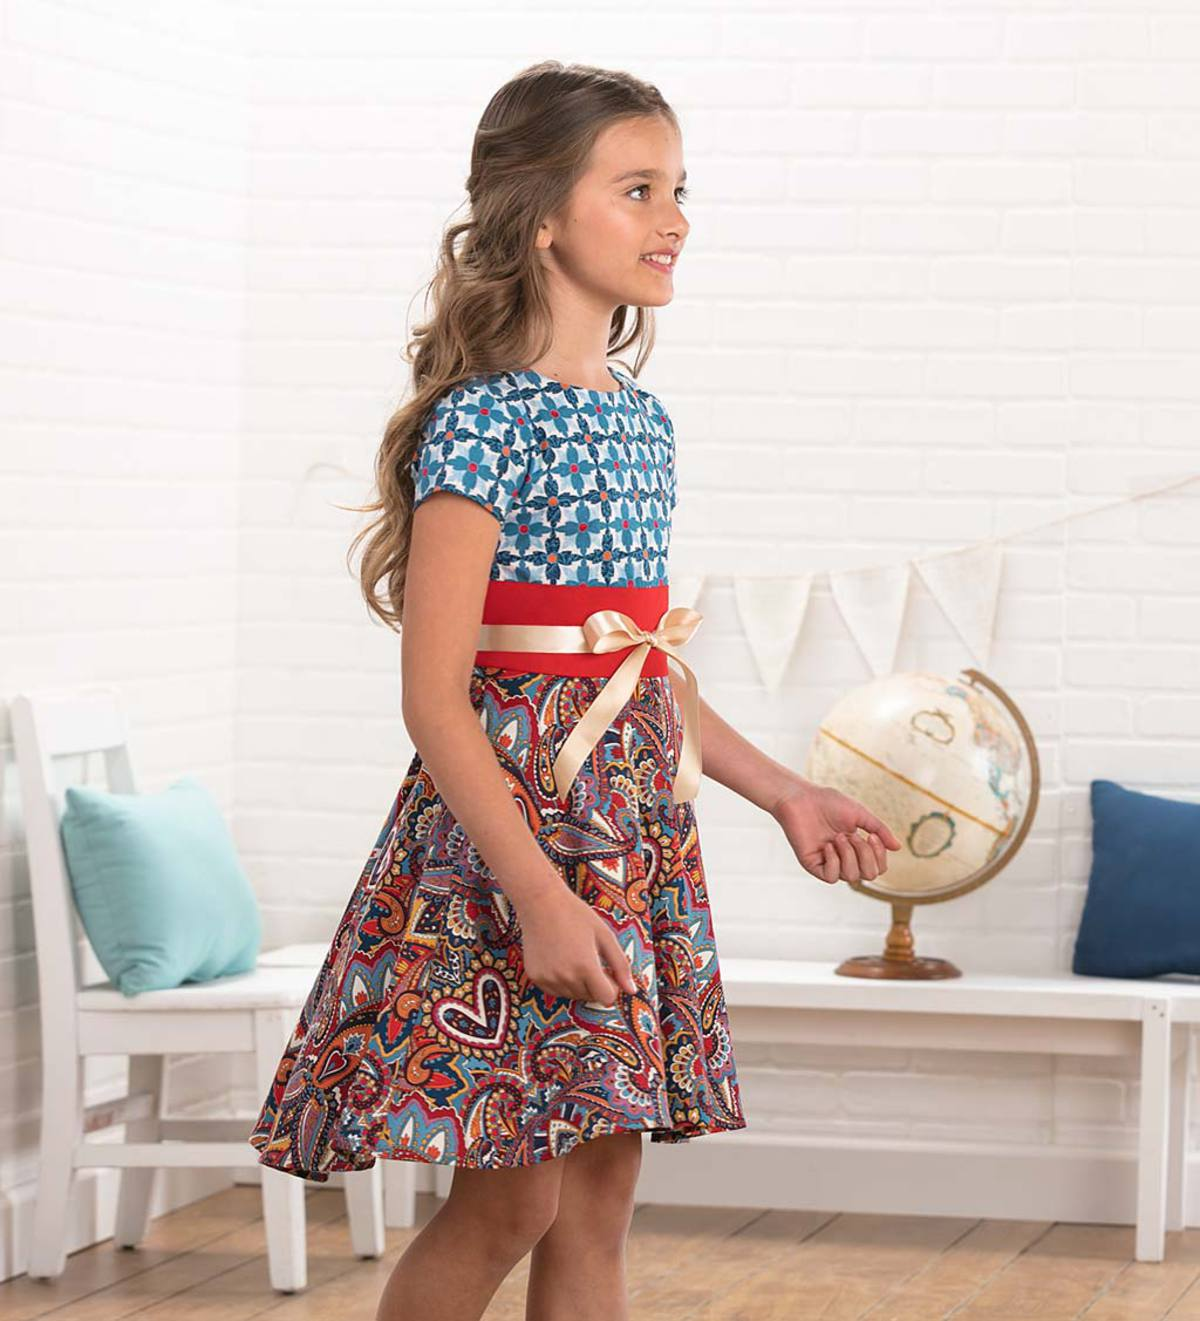 Short-Sleeve Mixed-Fabric Dress with Ribbon Belt